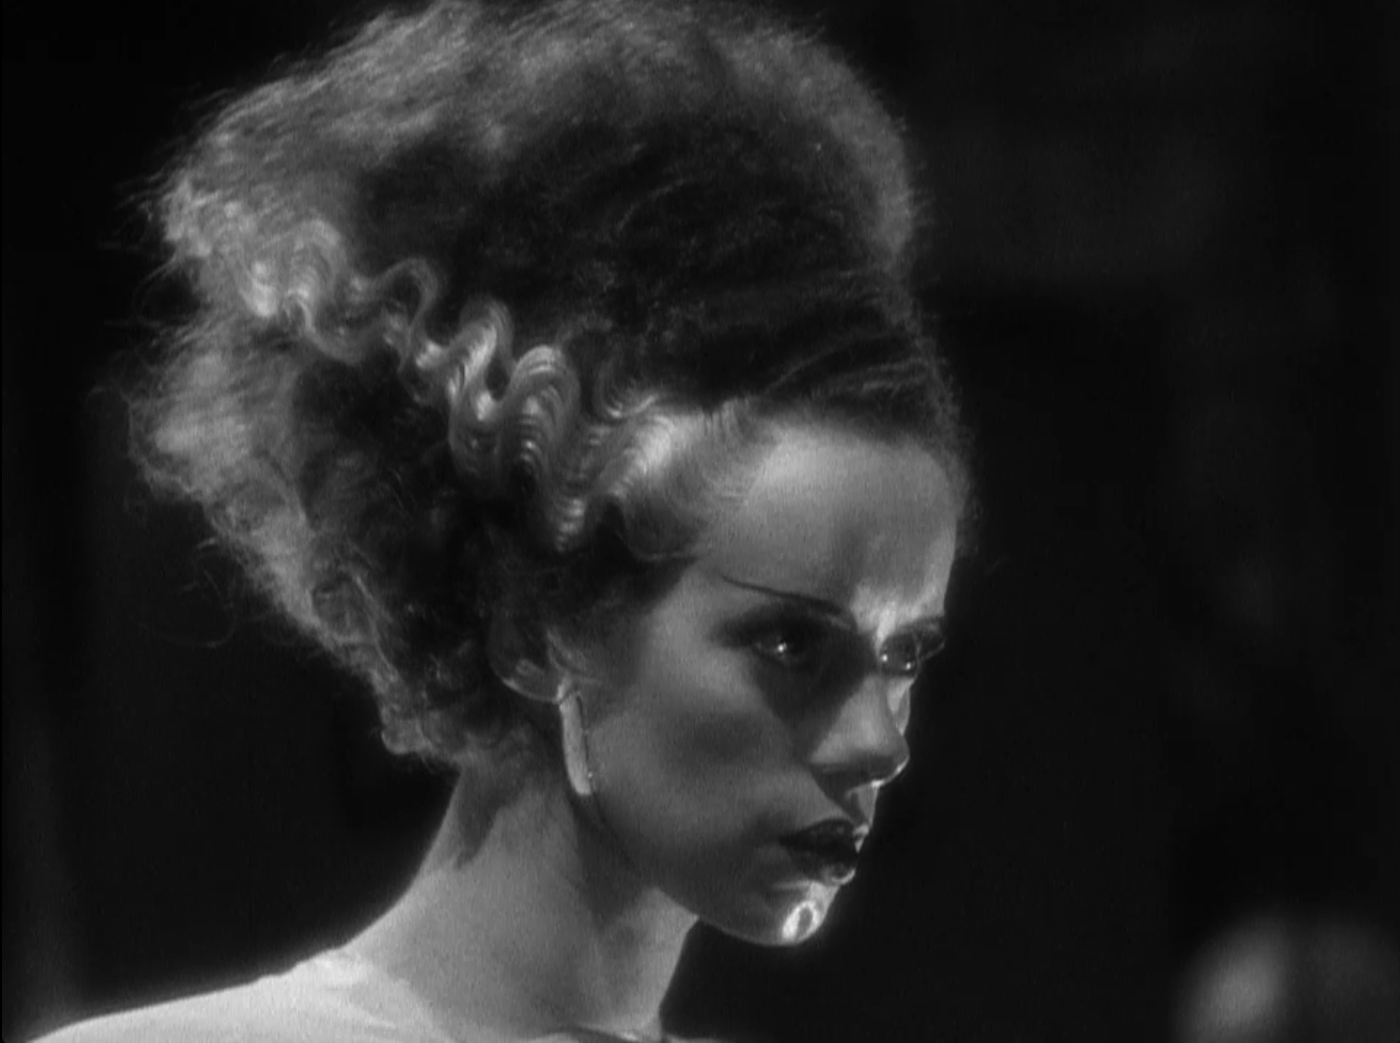 THE BRIDE OF FRANKENSTEIN  1935 Bride Of Frankenstein Actress